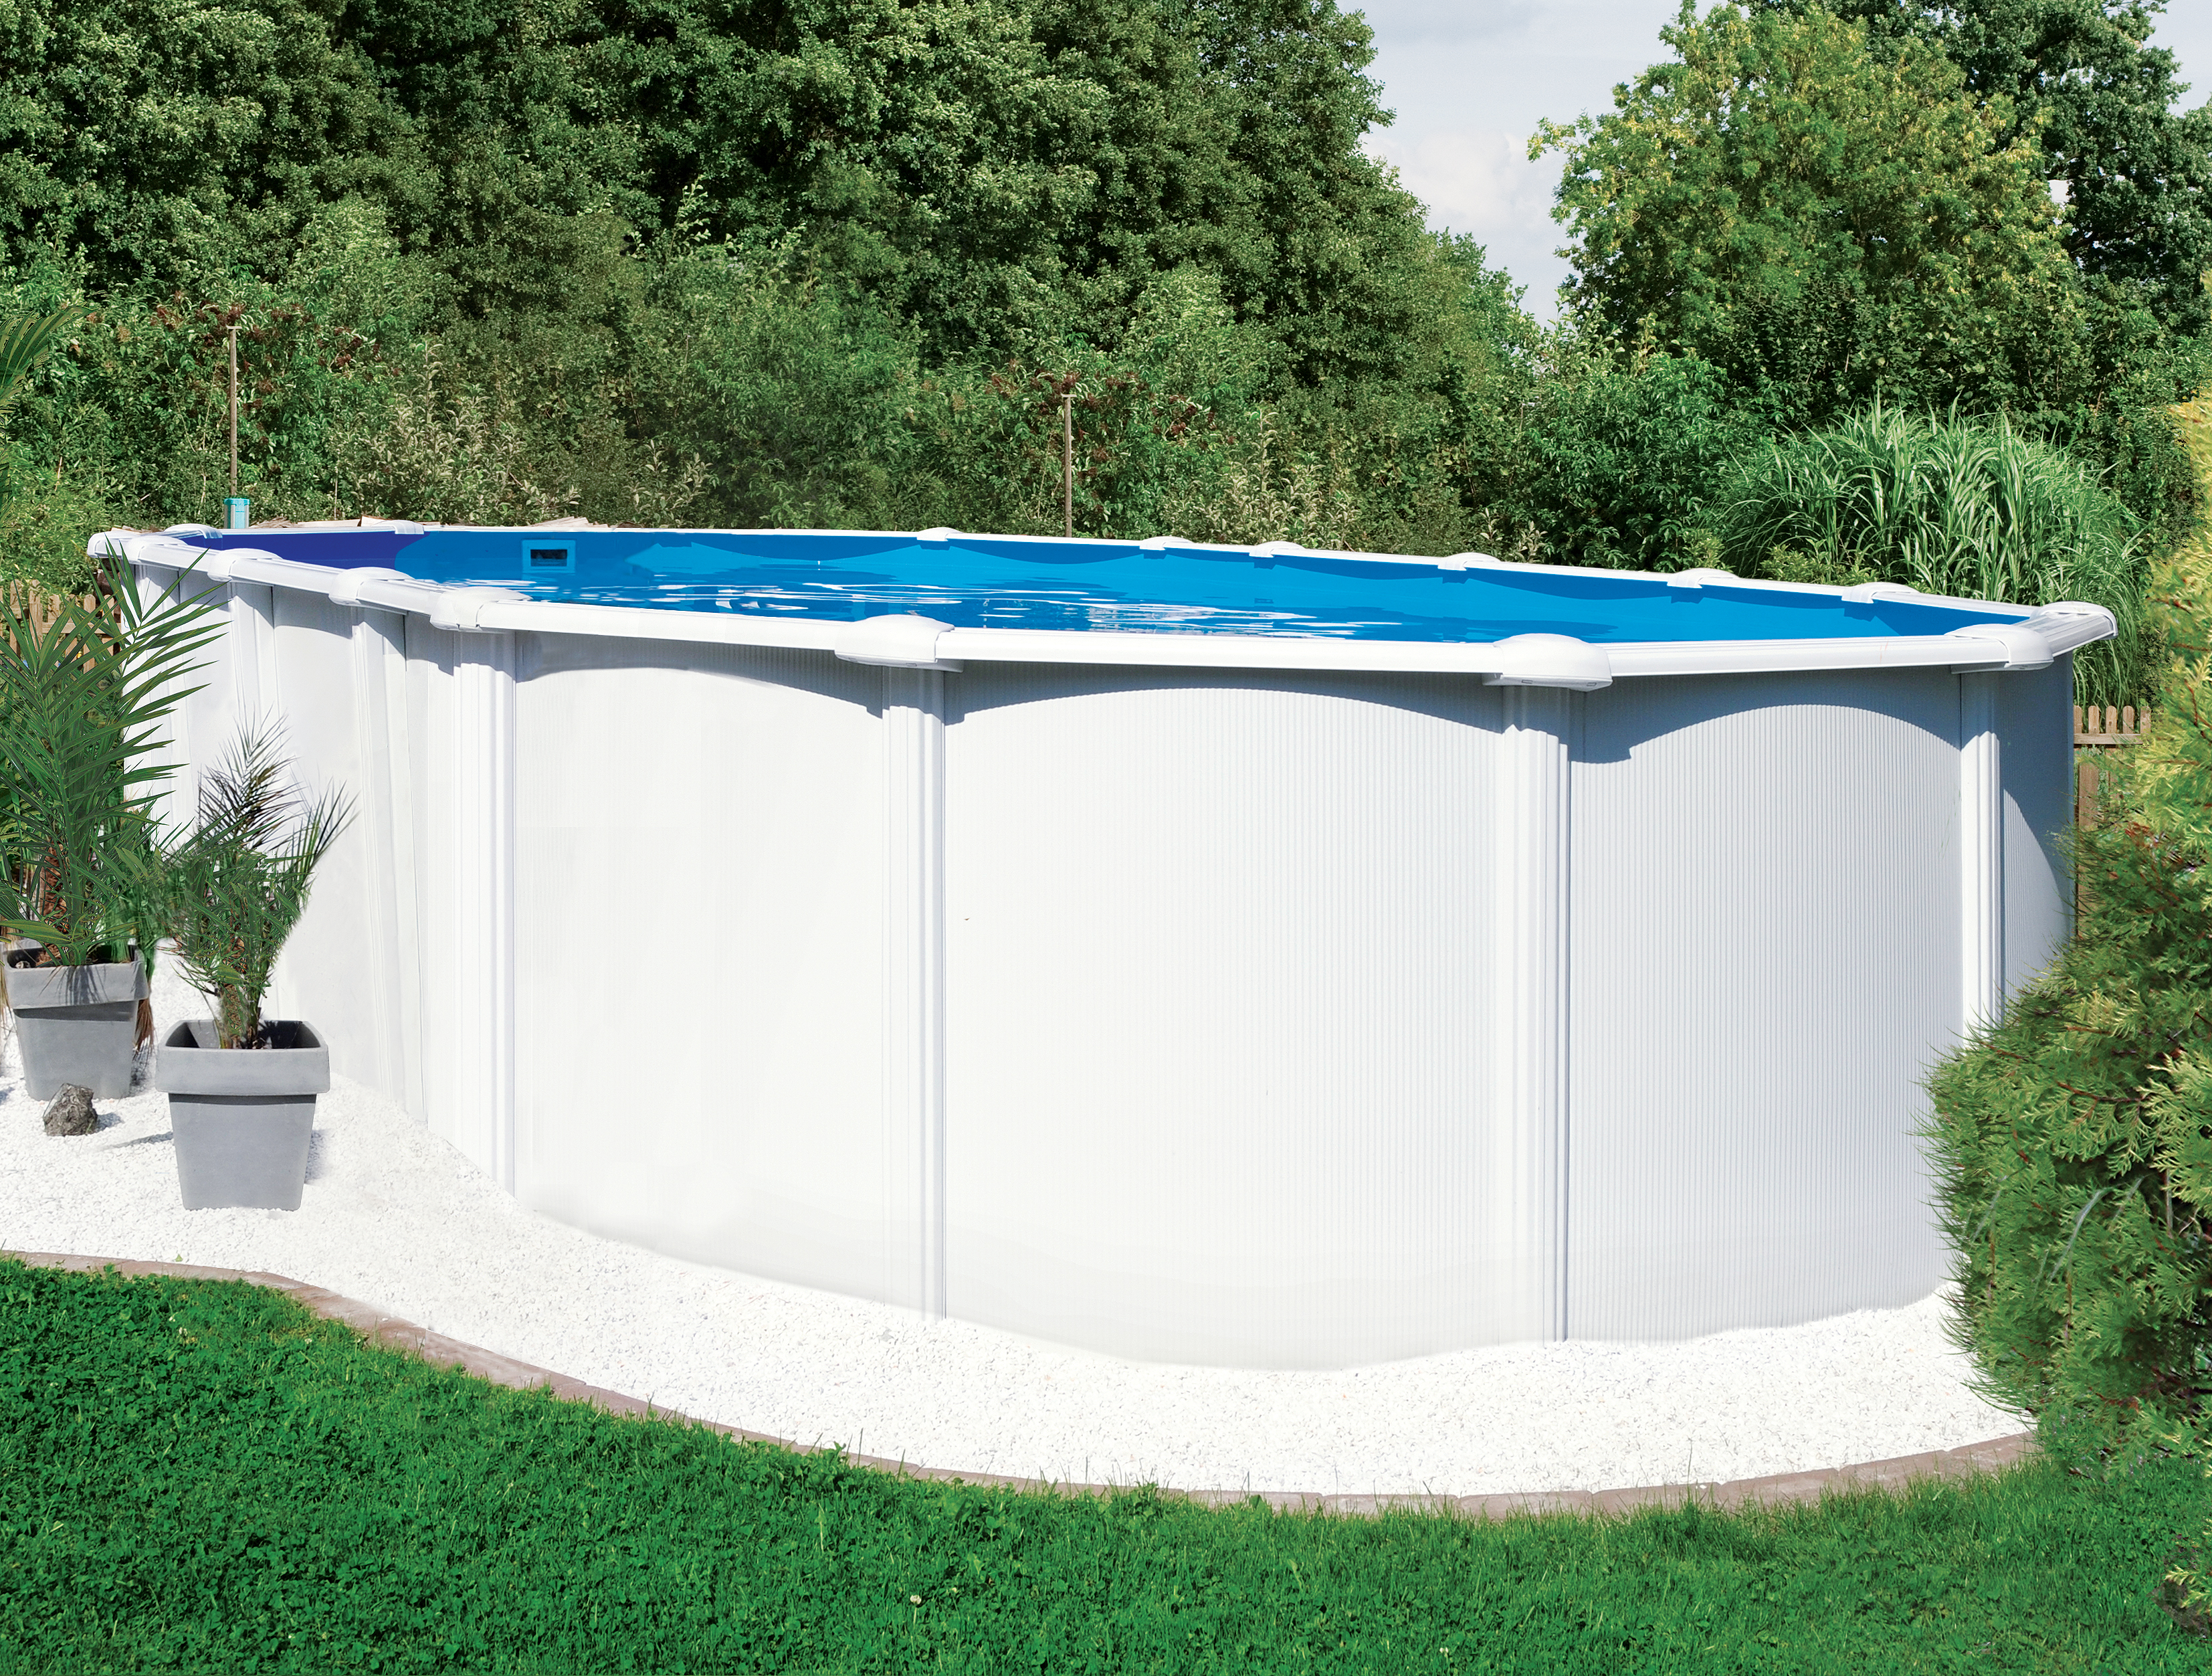 Steirerbecken pool 6 1x3 7x1 32m std oval wei for Stahl pool oval